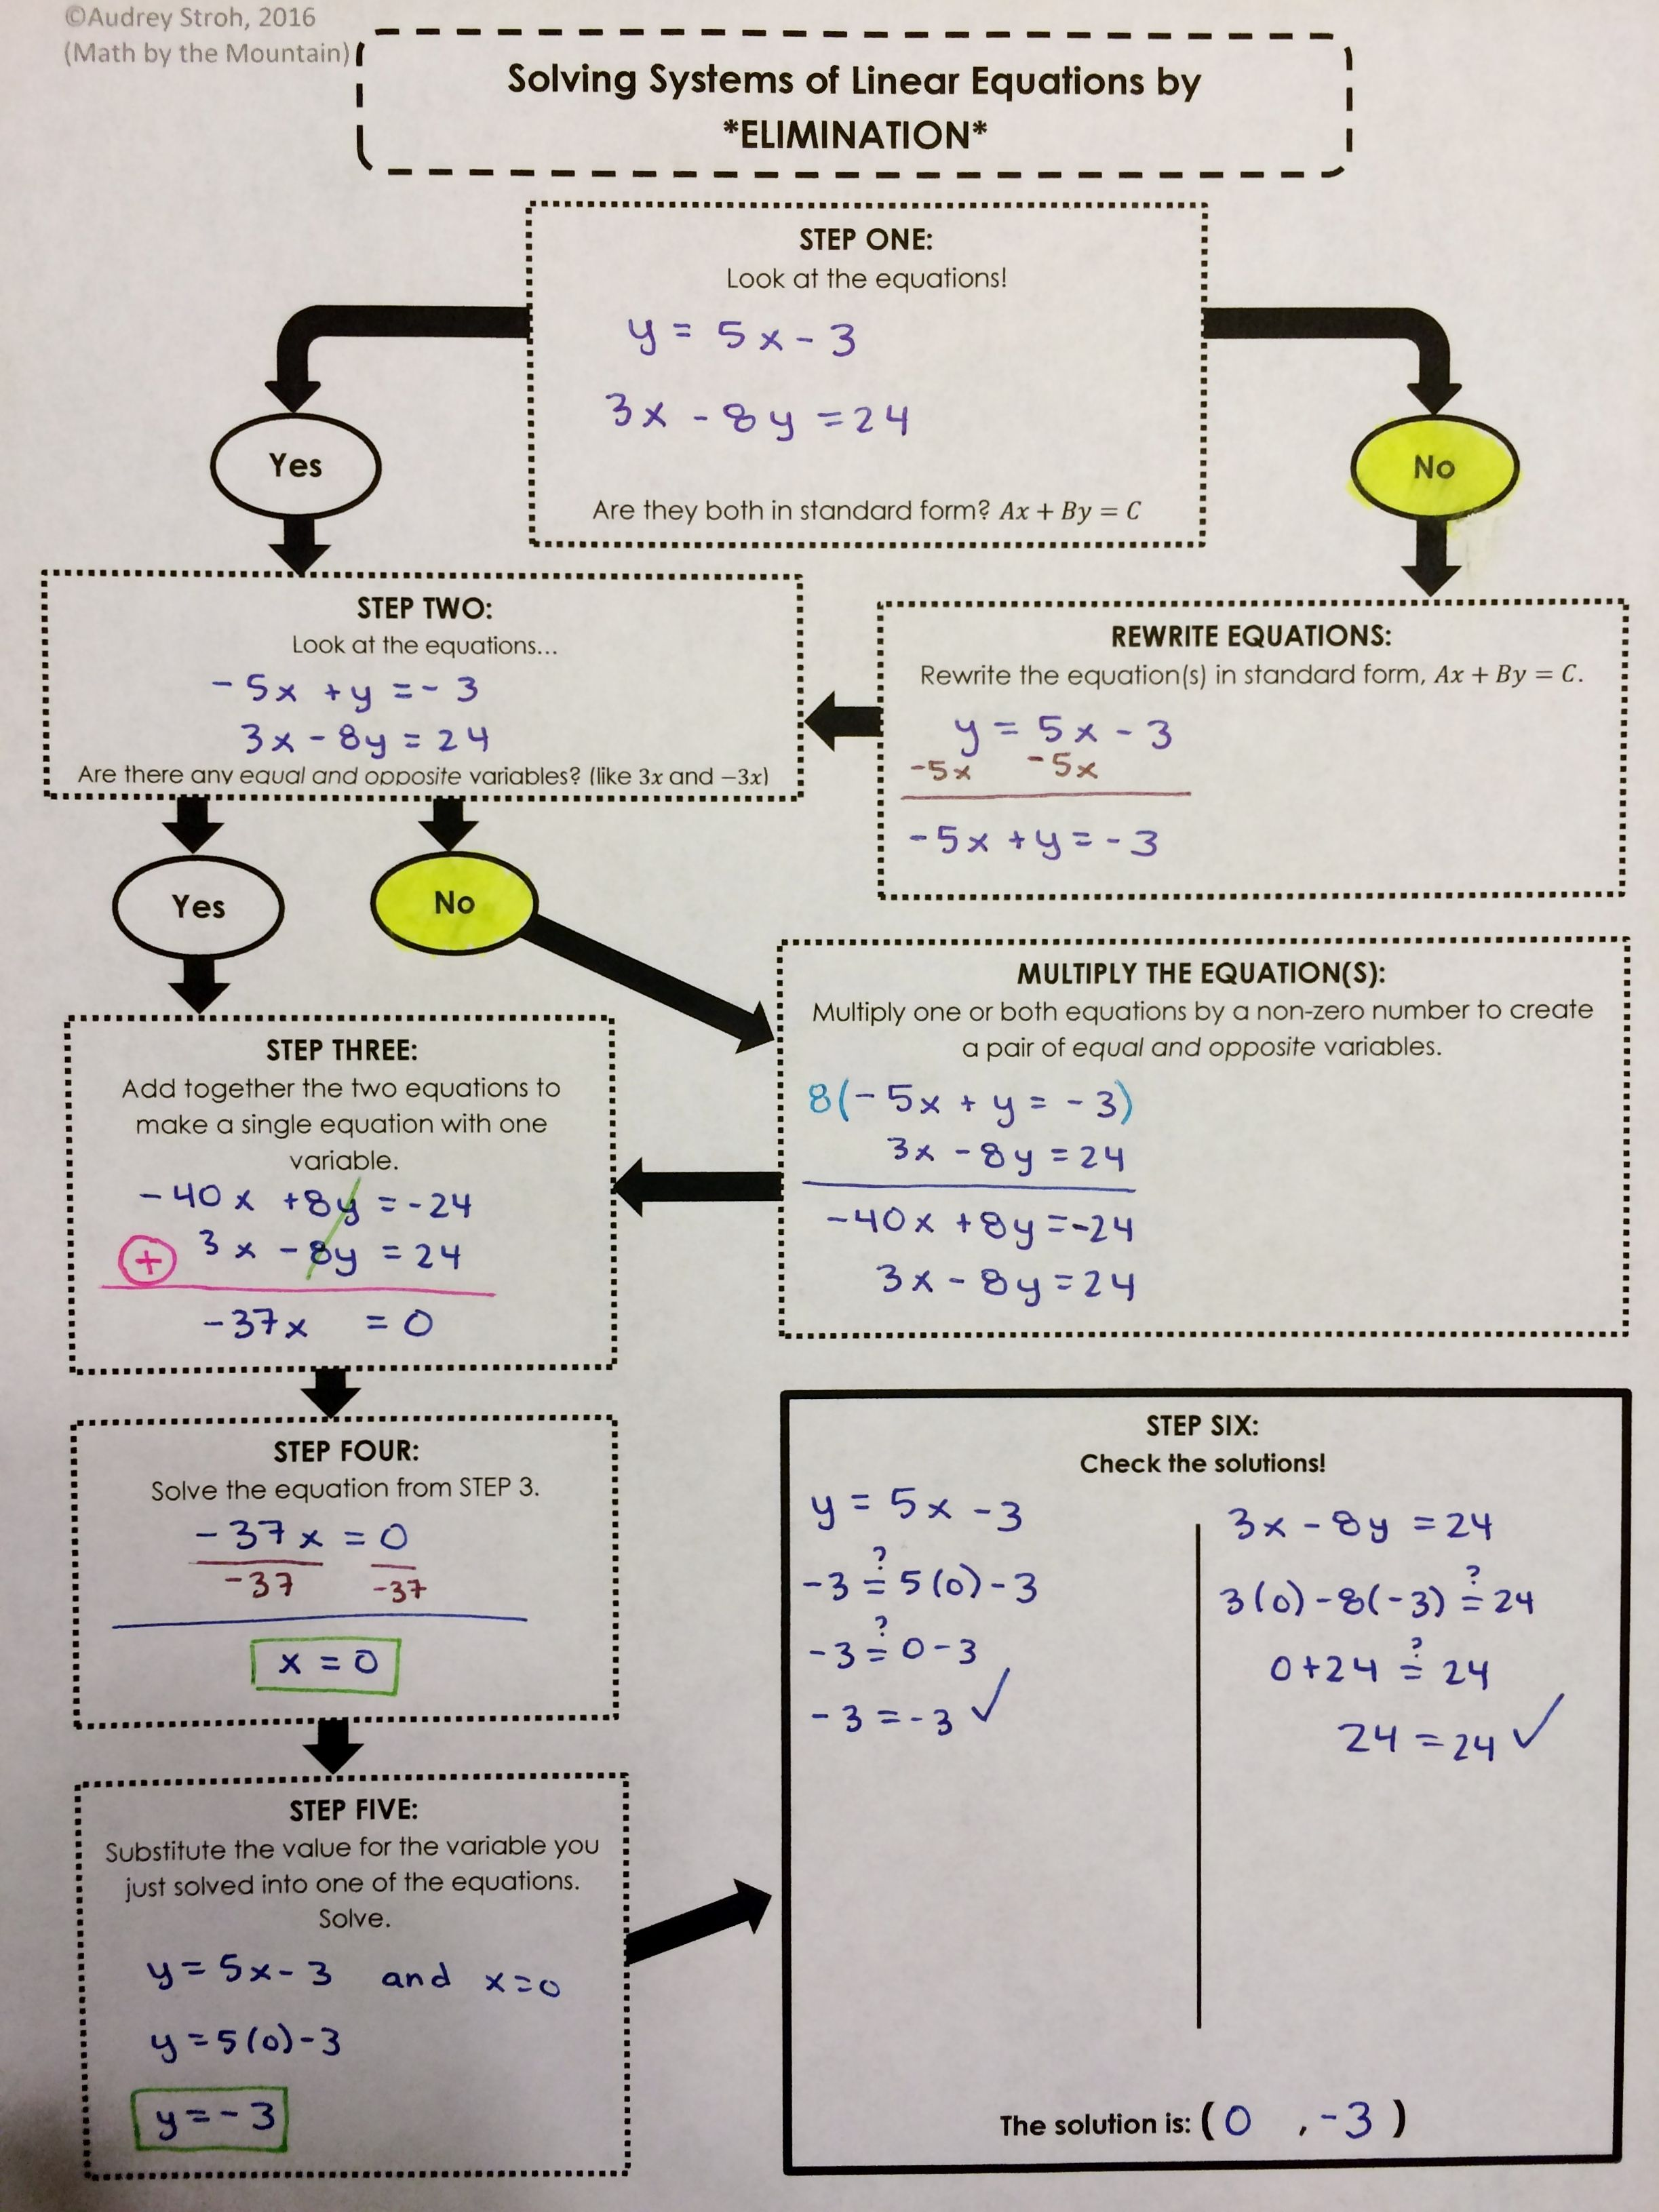 Solving Systems Of Equations By Elimination Flowchart